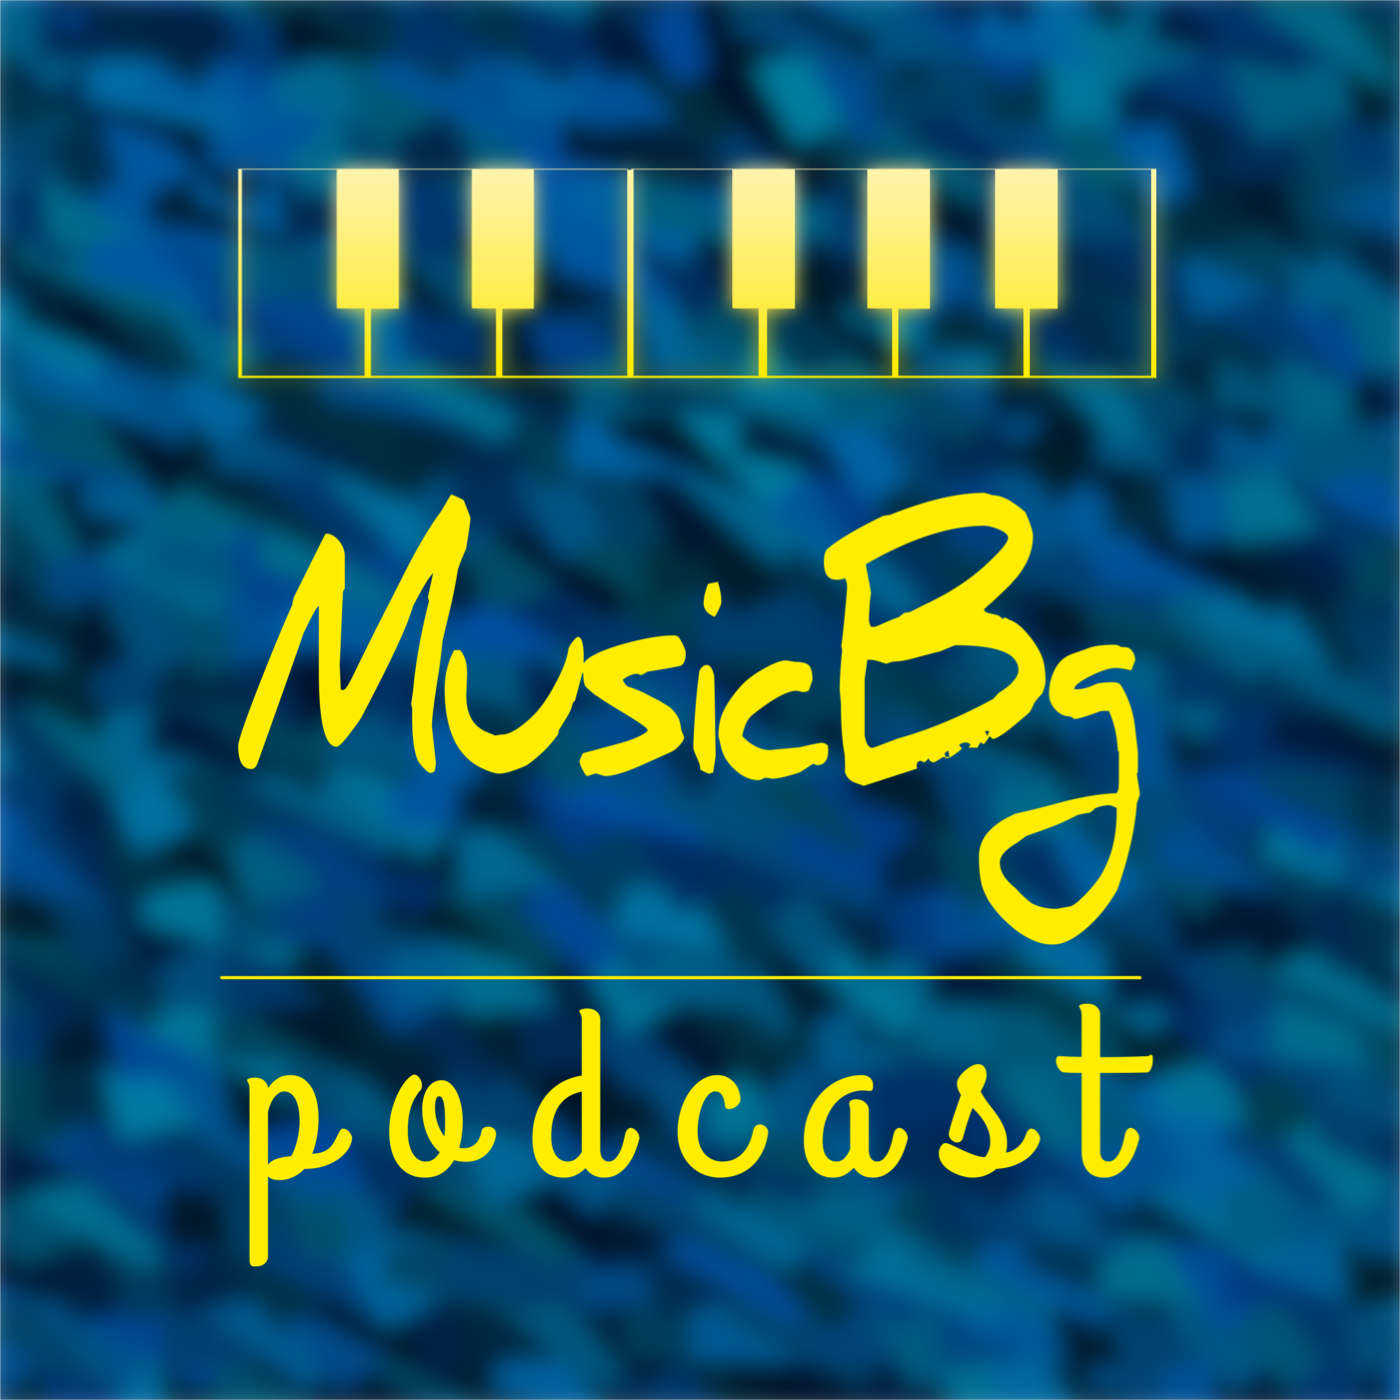 Music.bg - podcast